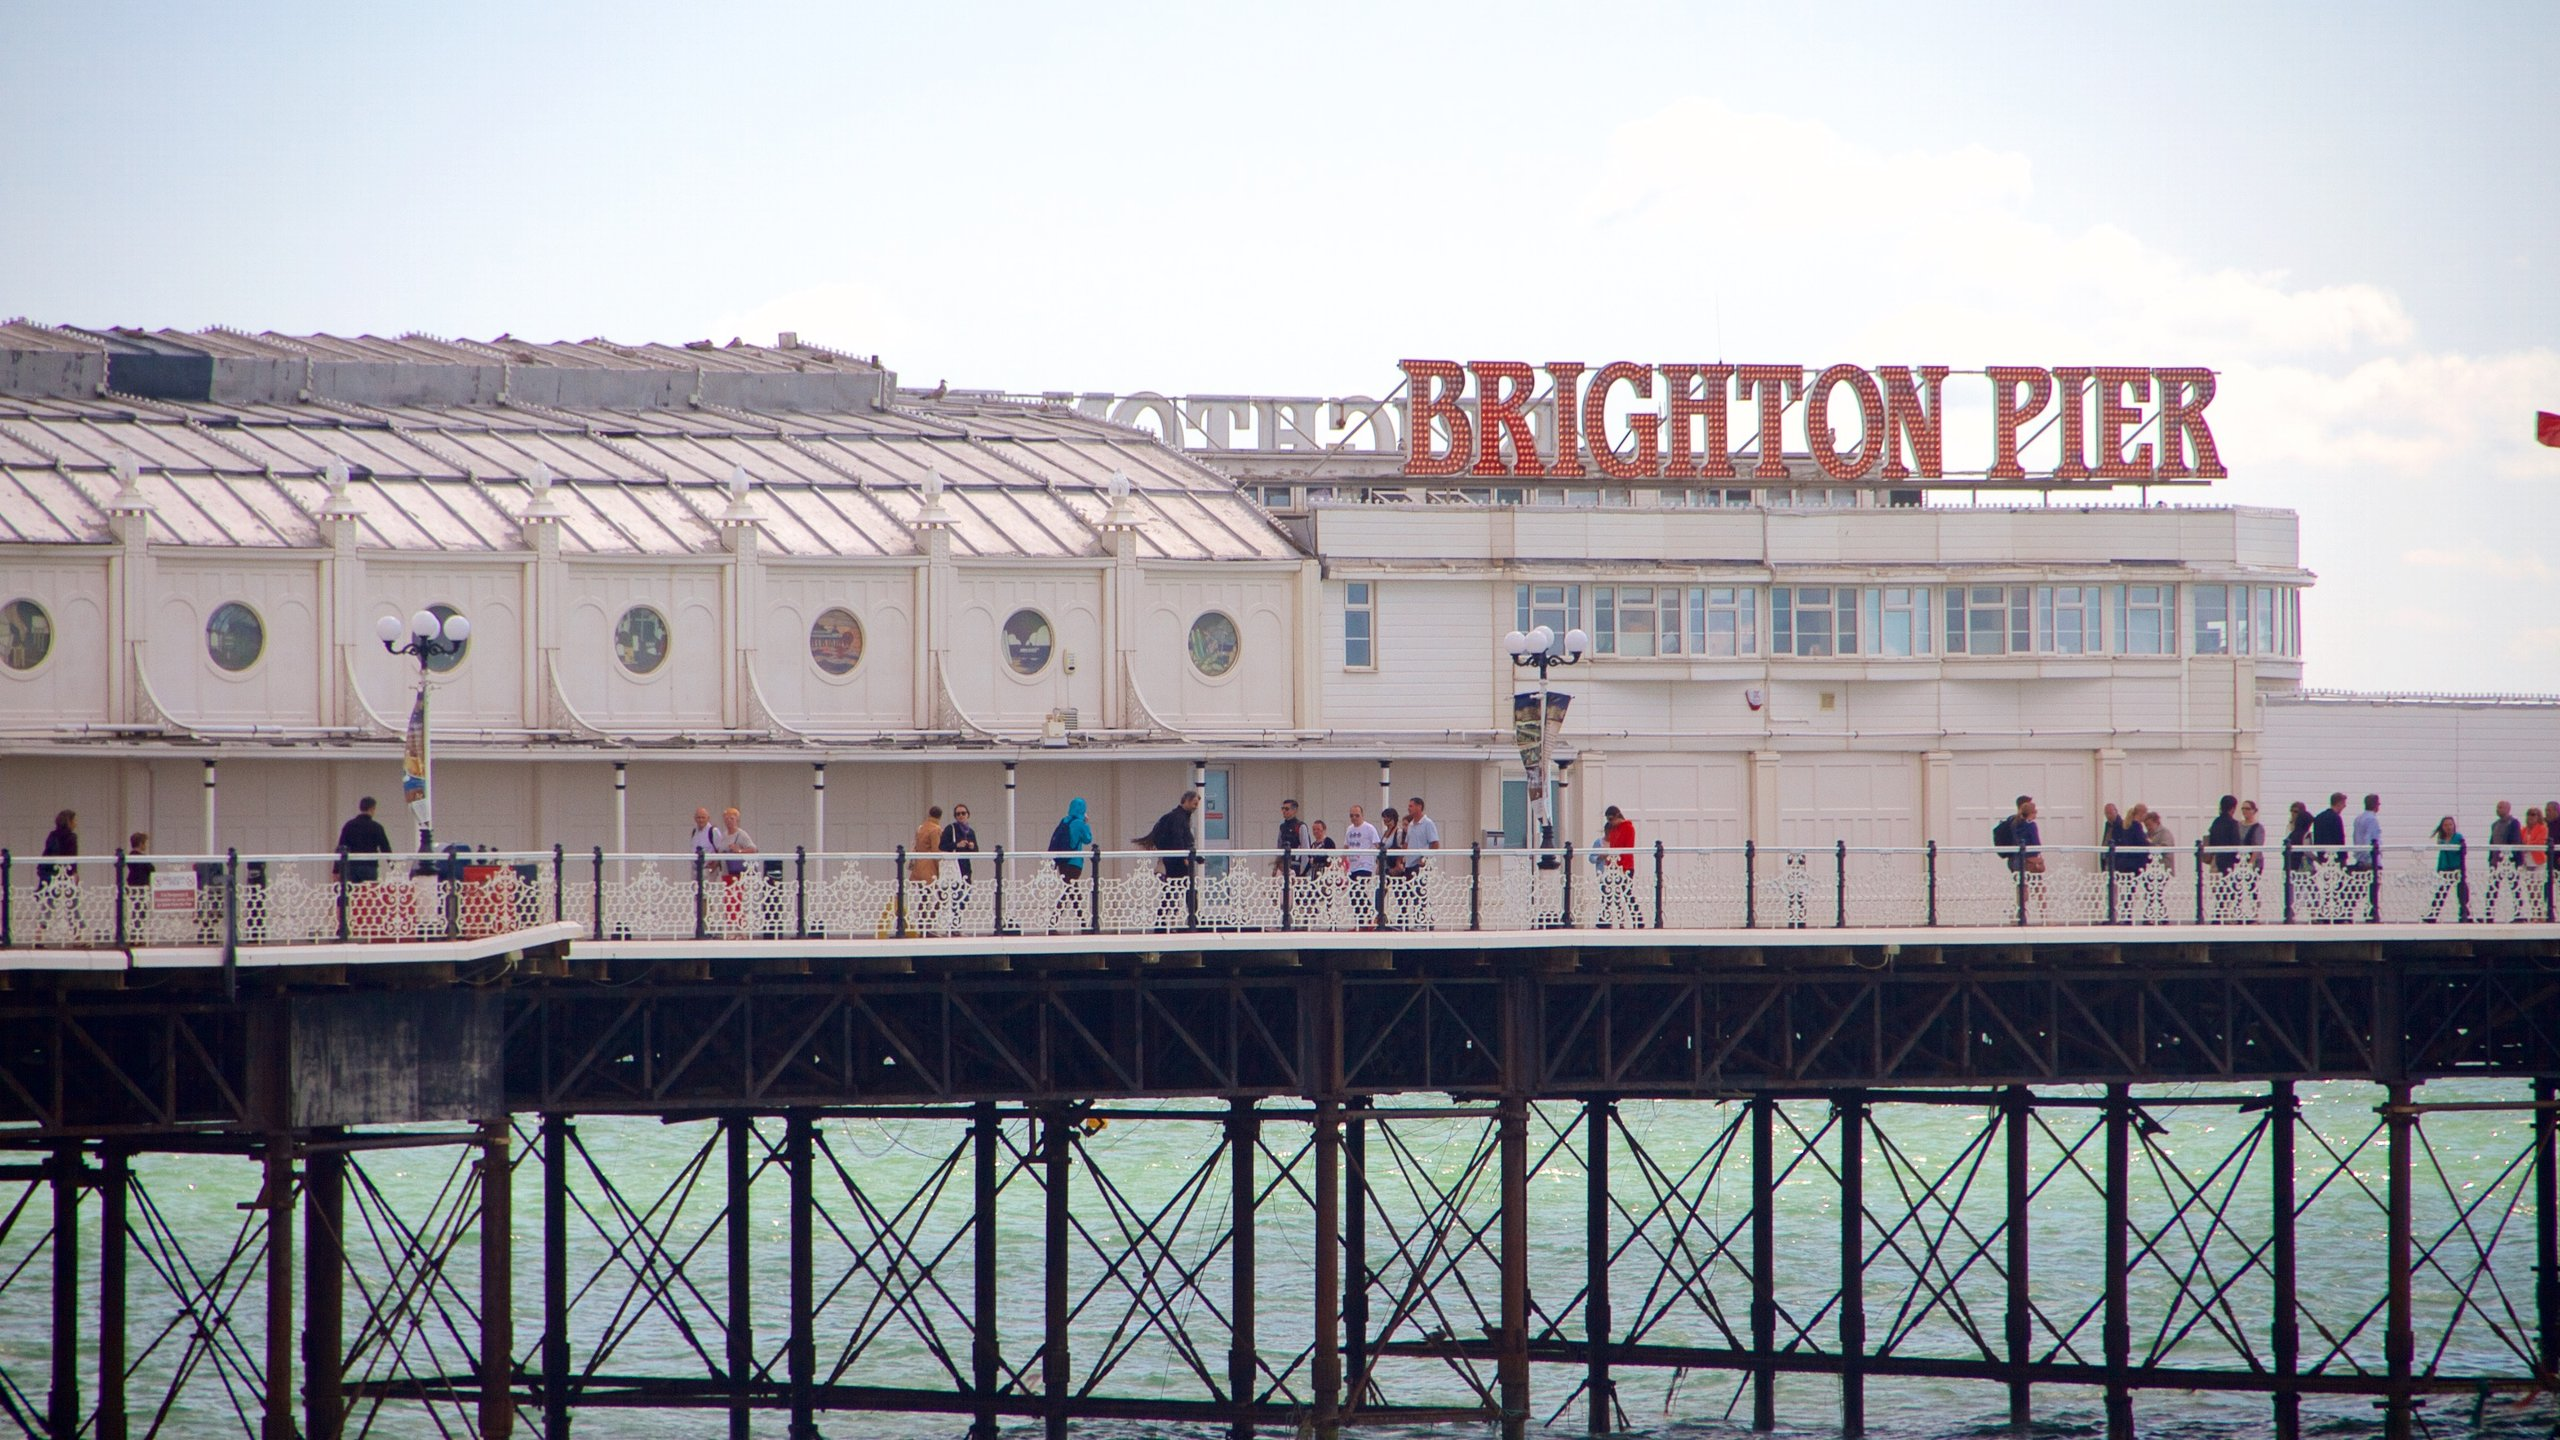 Enjoy fun-filled hours at this Brighton attraction, home to fairground rides, amusement arcades and classic seaside snacks.